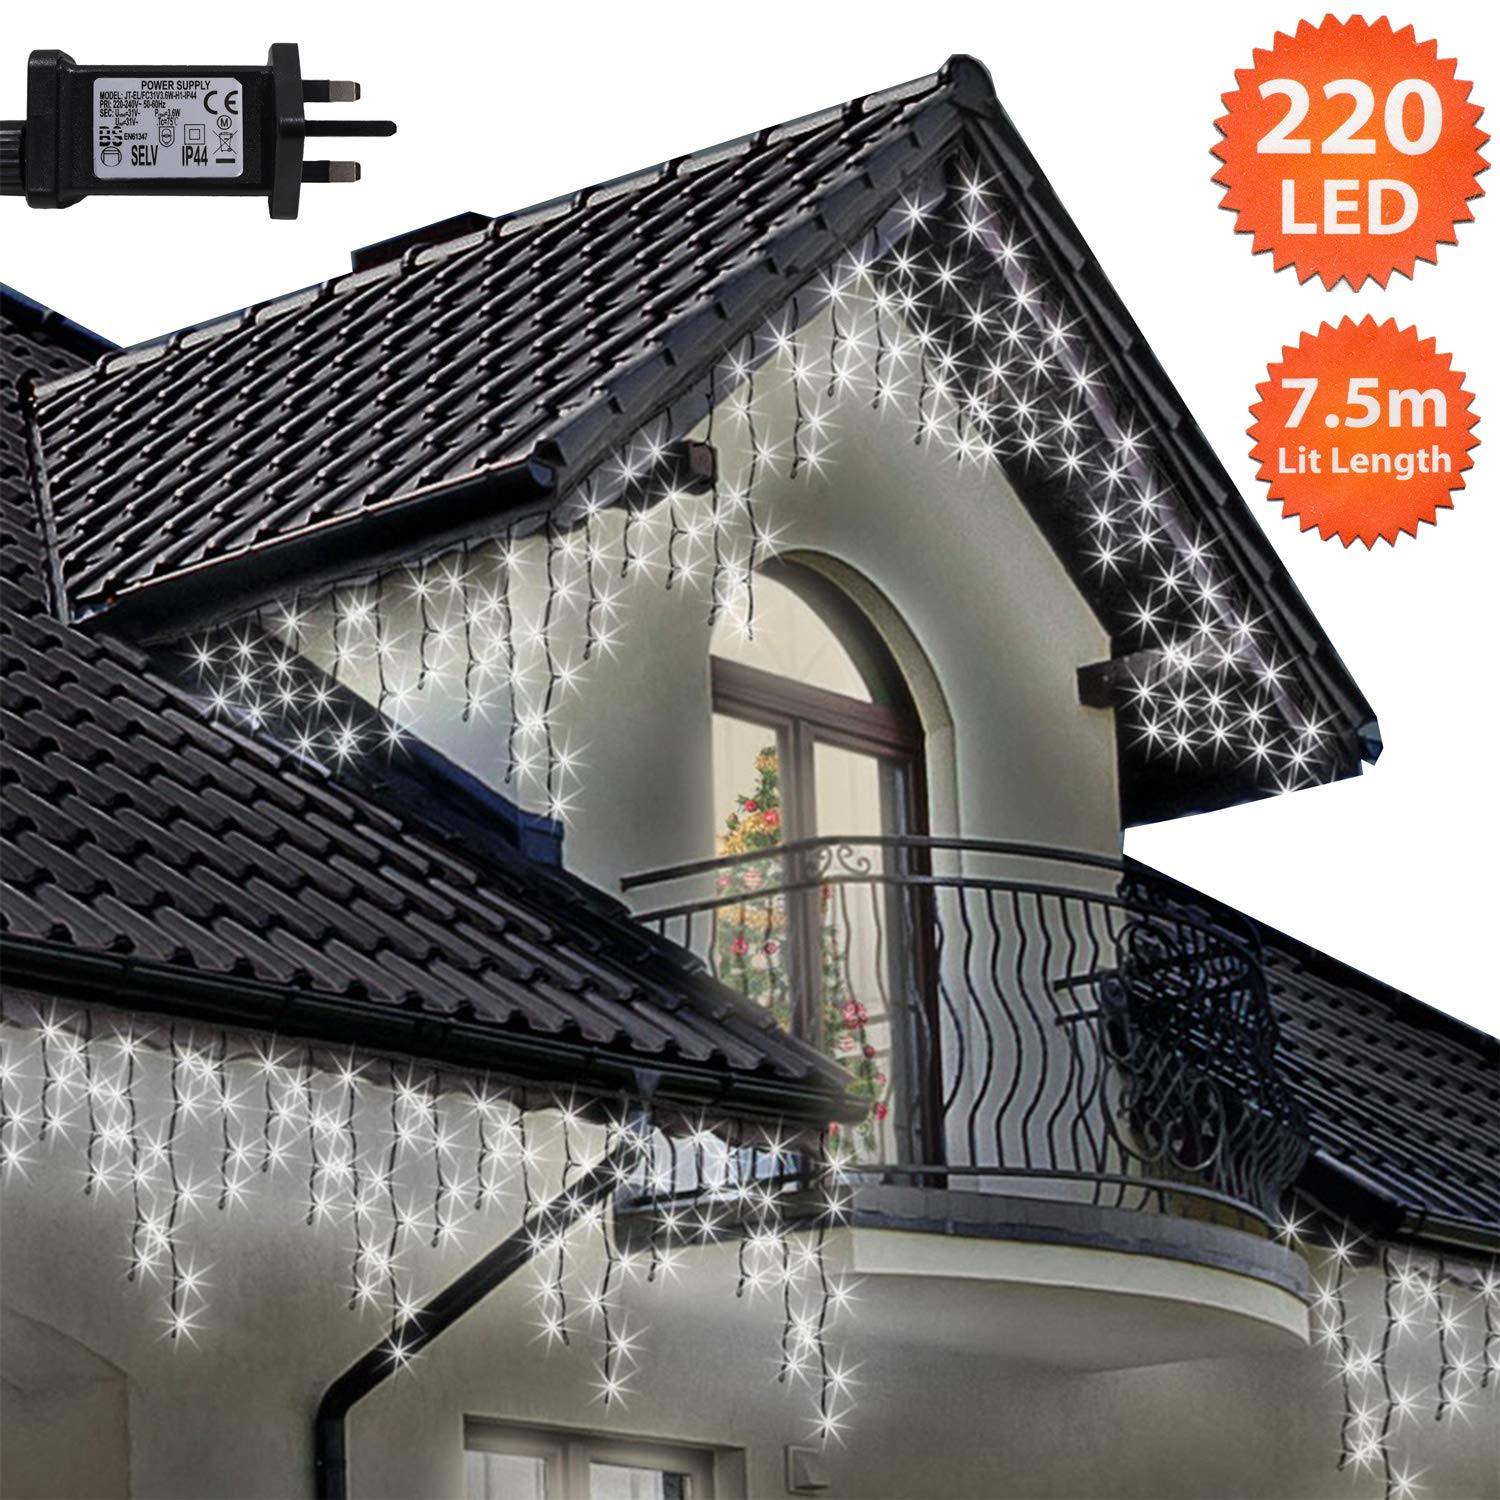 Icicle Lights 220 Led 75m Bright Cool White Outdoor Christmas Brighter Lighting With Multiple Leds Indoor String Fairy Timer Memory Mains Powered 24ft Lit Length 10m 32ft Lead